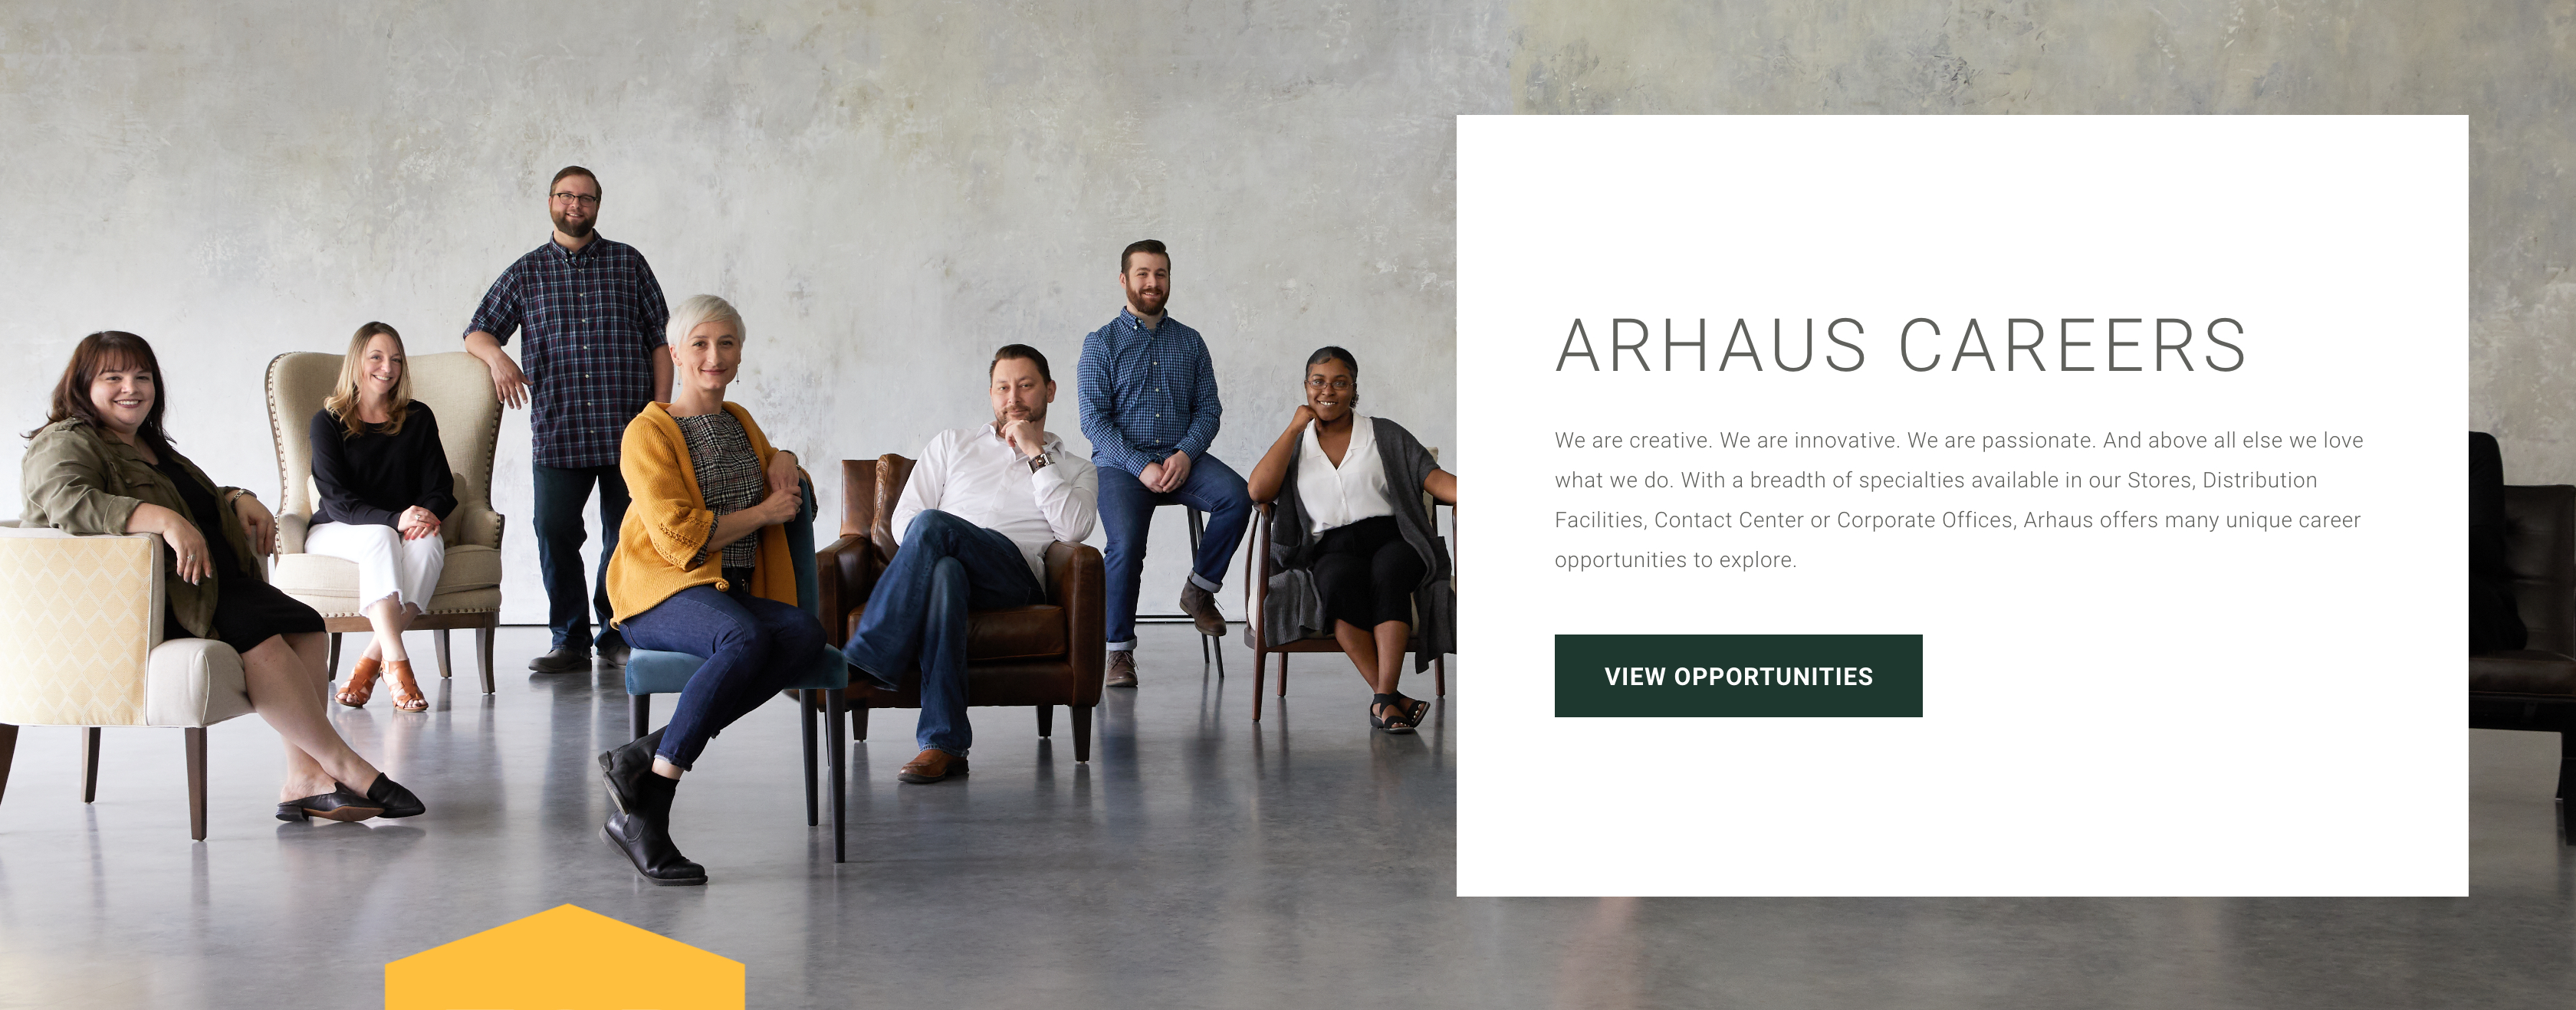 View Arhaus Career Opportunities